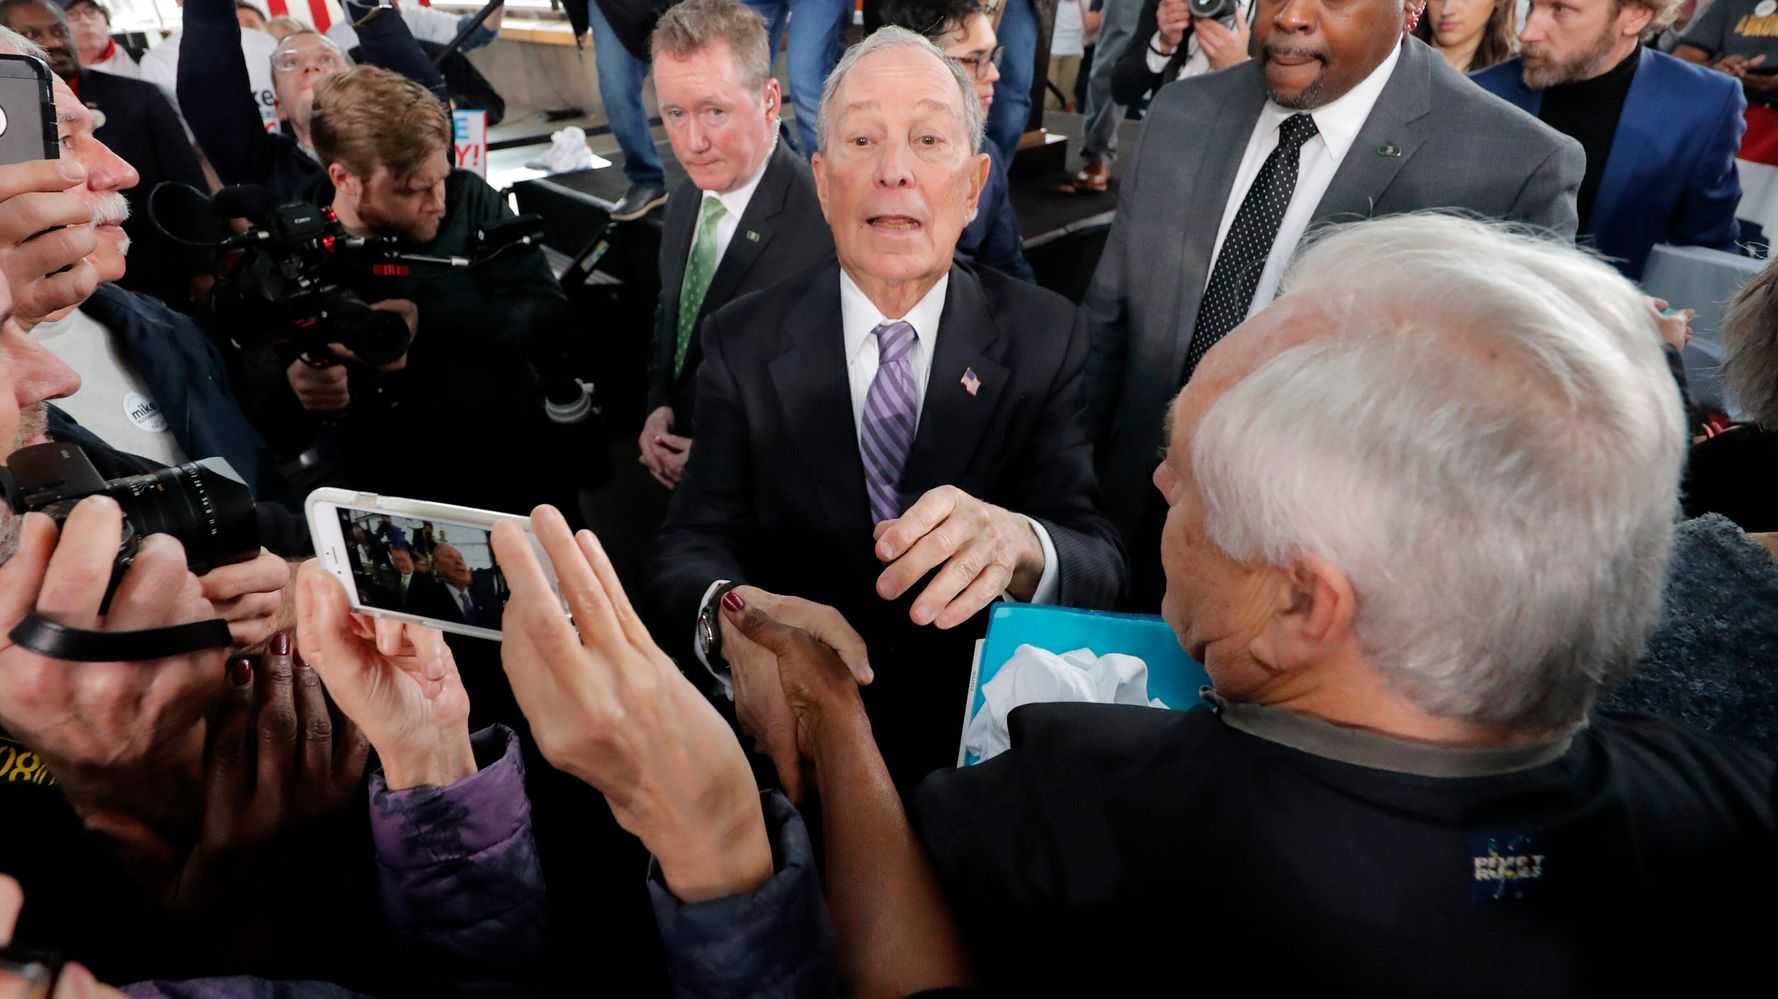 Westlake Legal Group 5e4dc39f2300003103ddcad1 Democrats Swap Pre-Debate Barbs As Mike Bloomberg Faces First Test